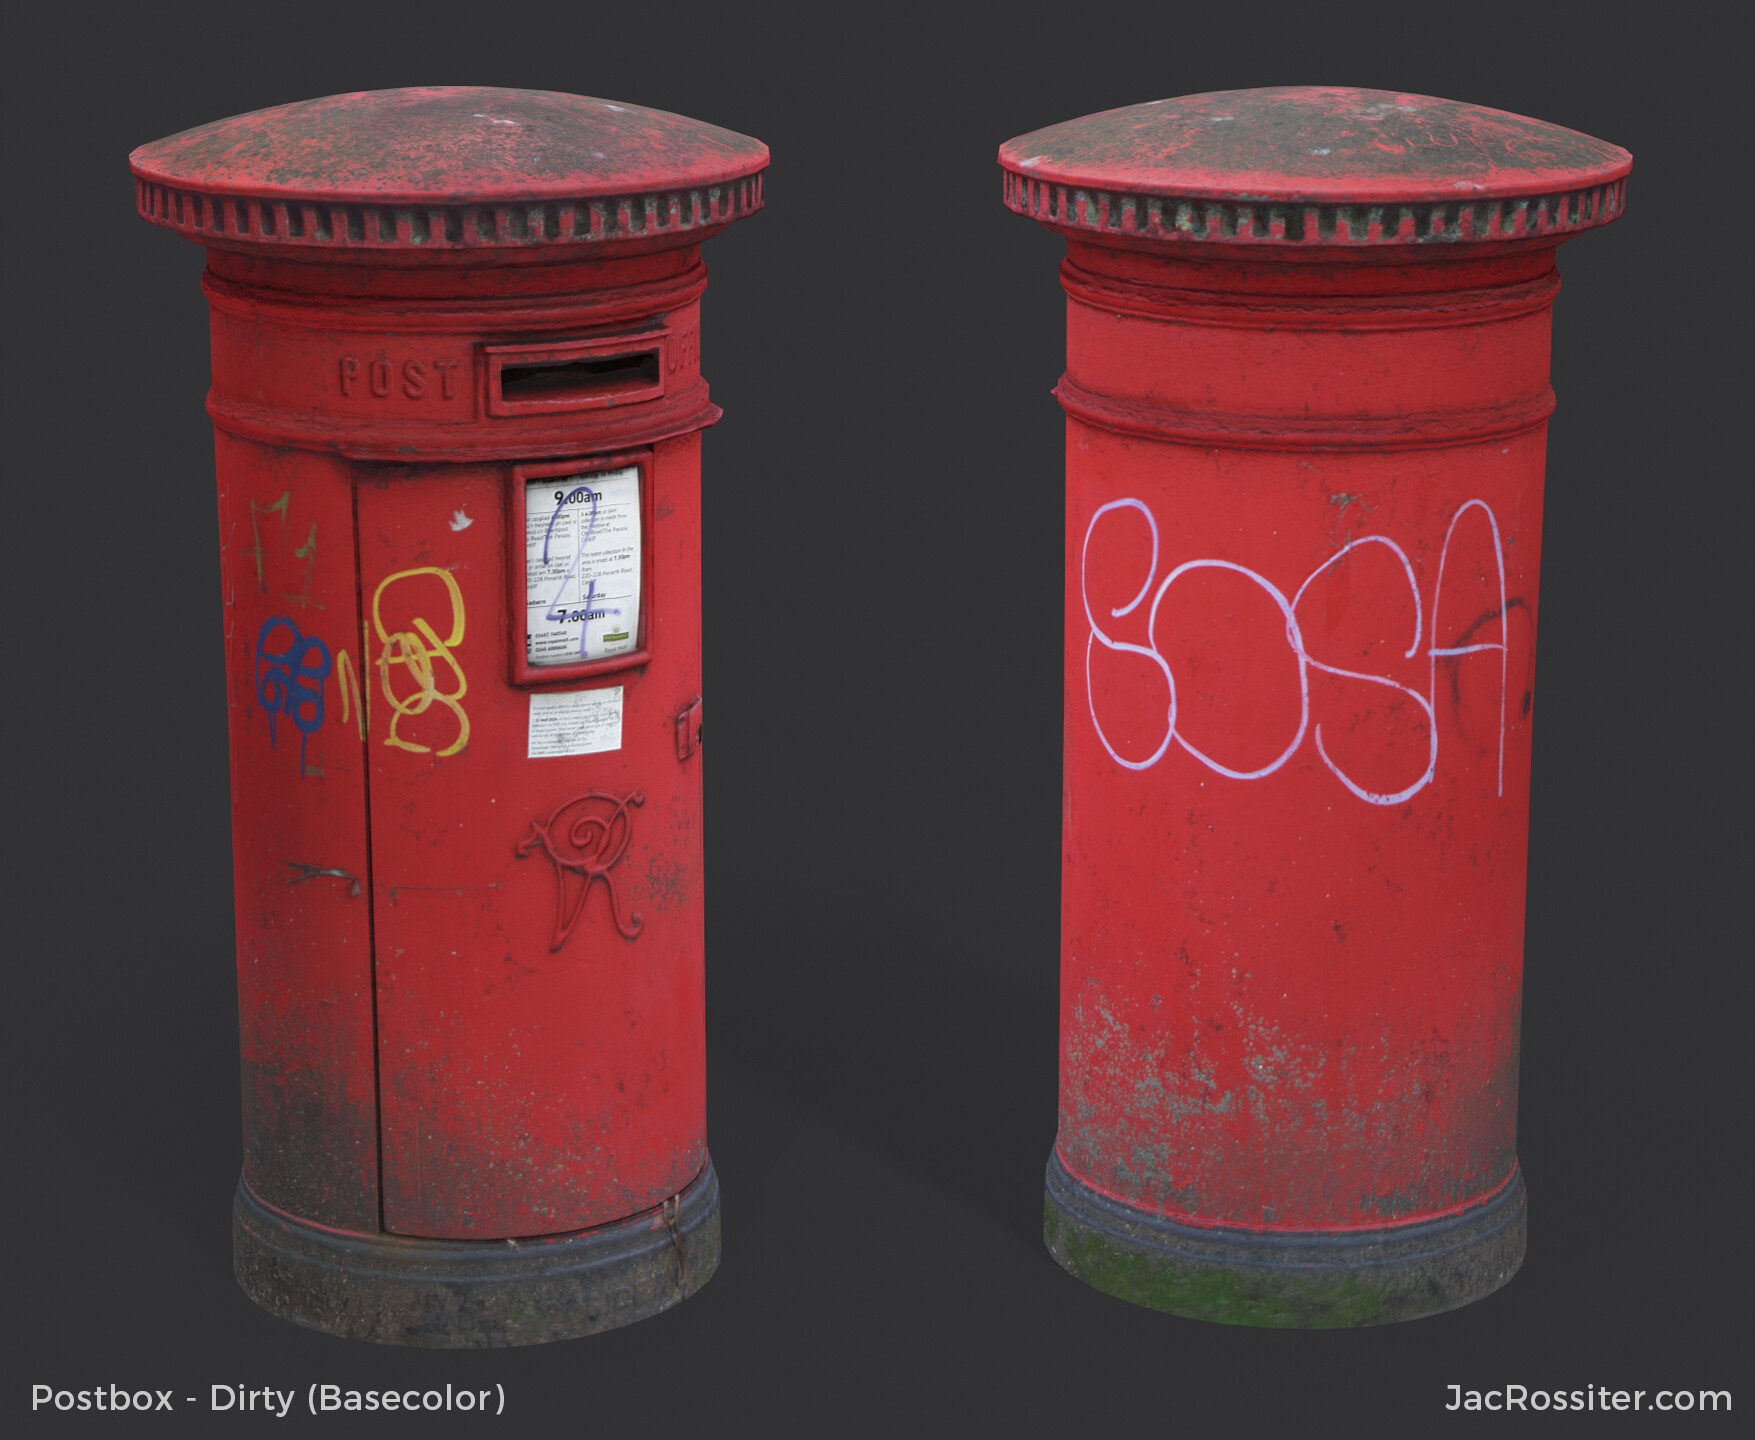 Jac rossiter postbox render a basecolor